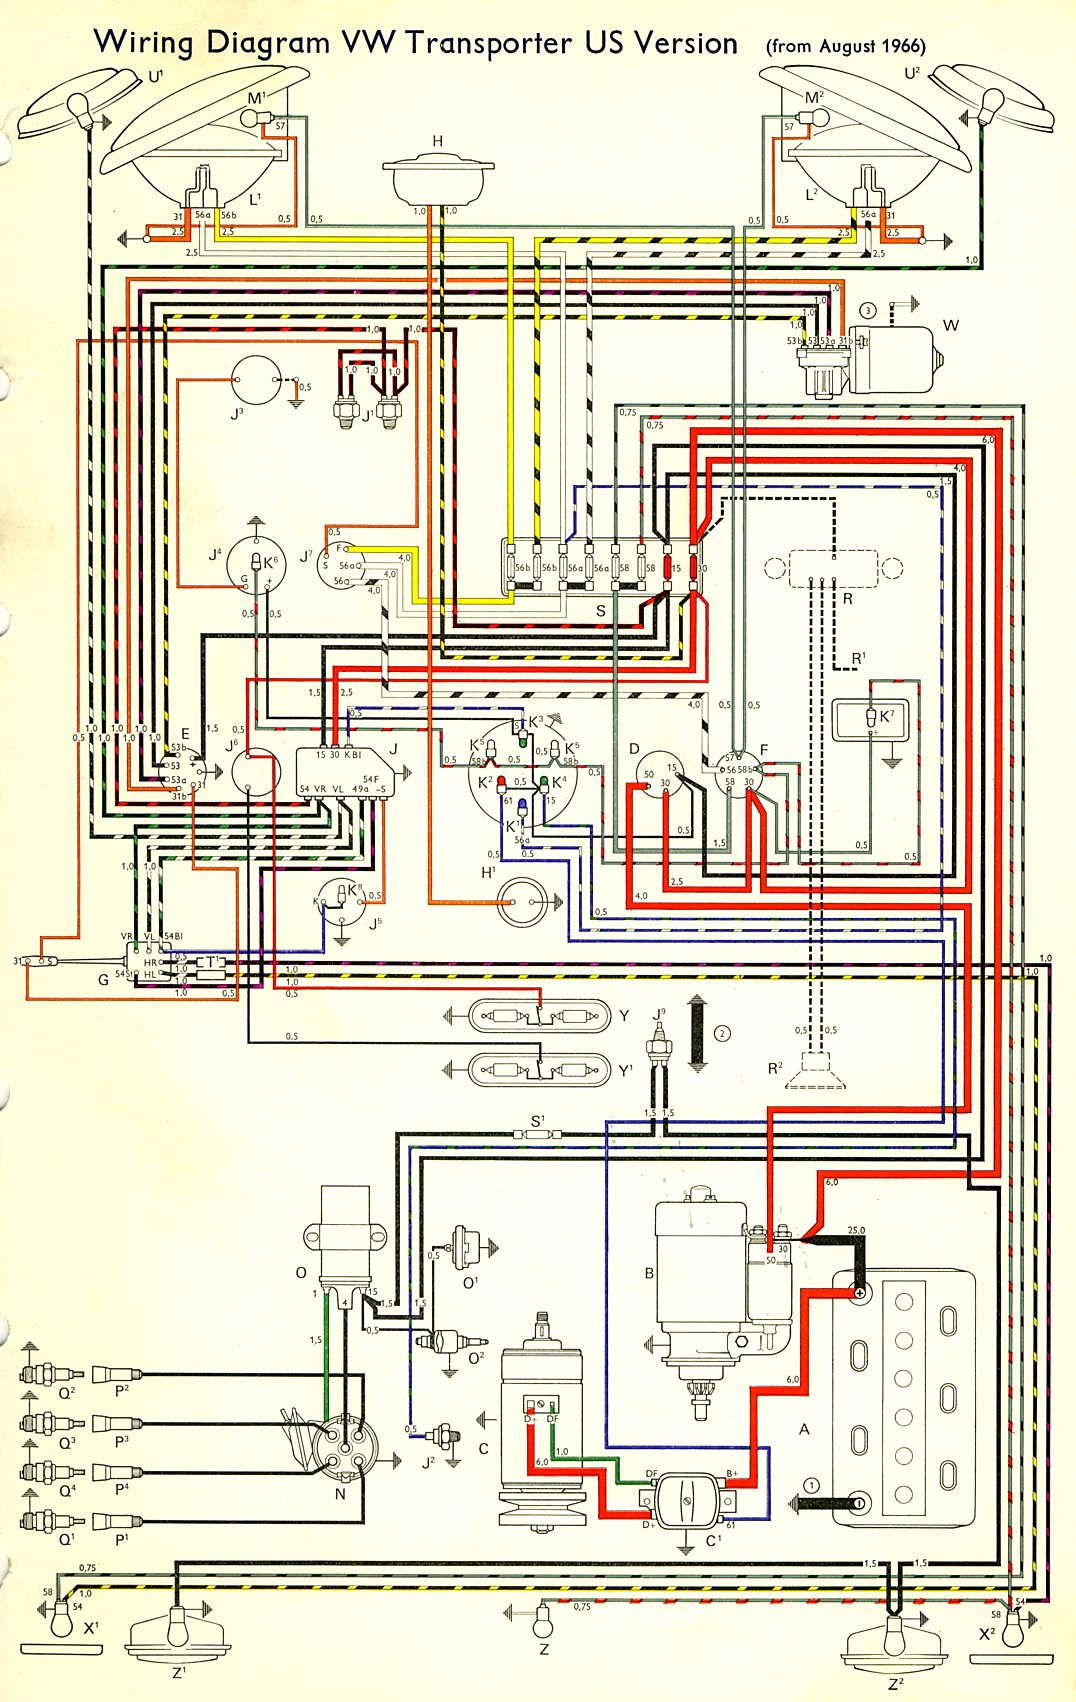 thesamba com type 2 wiring diagrams rh thesamba com 72 VW Bus Engine Diagram 72 VW Bus Engine Diagram